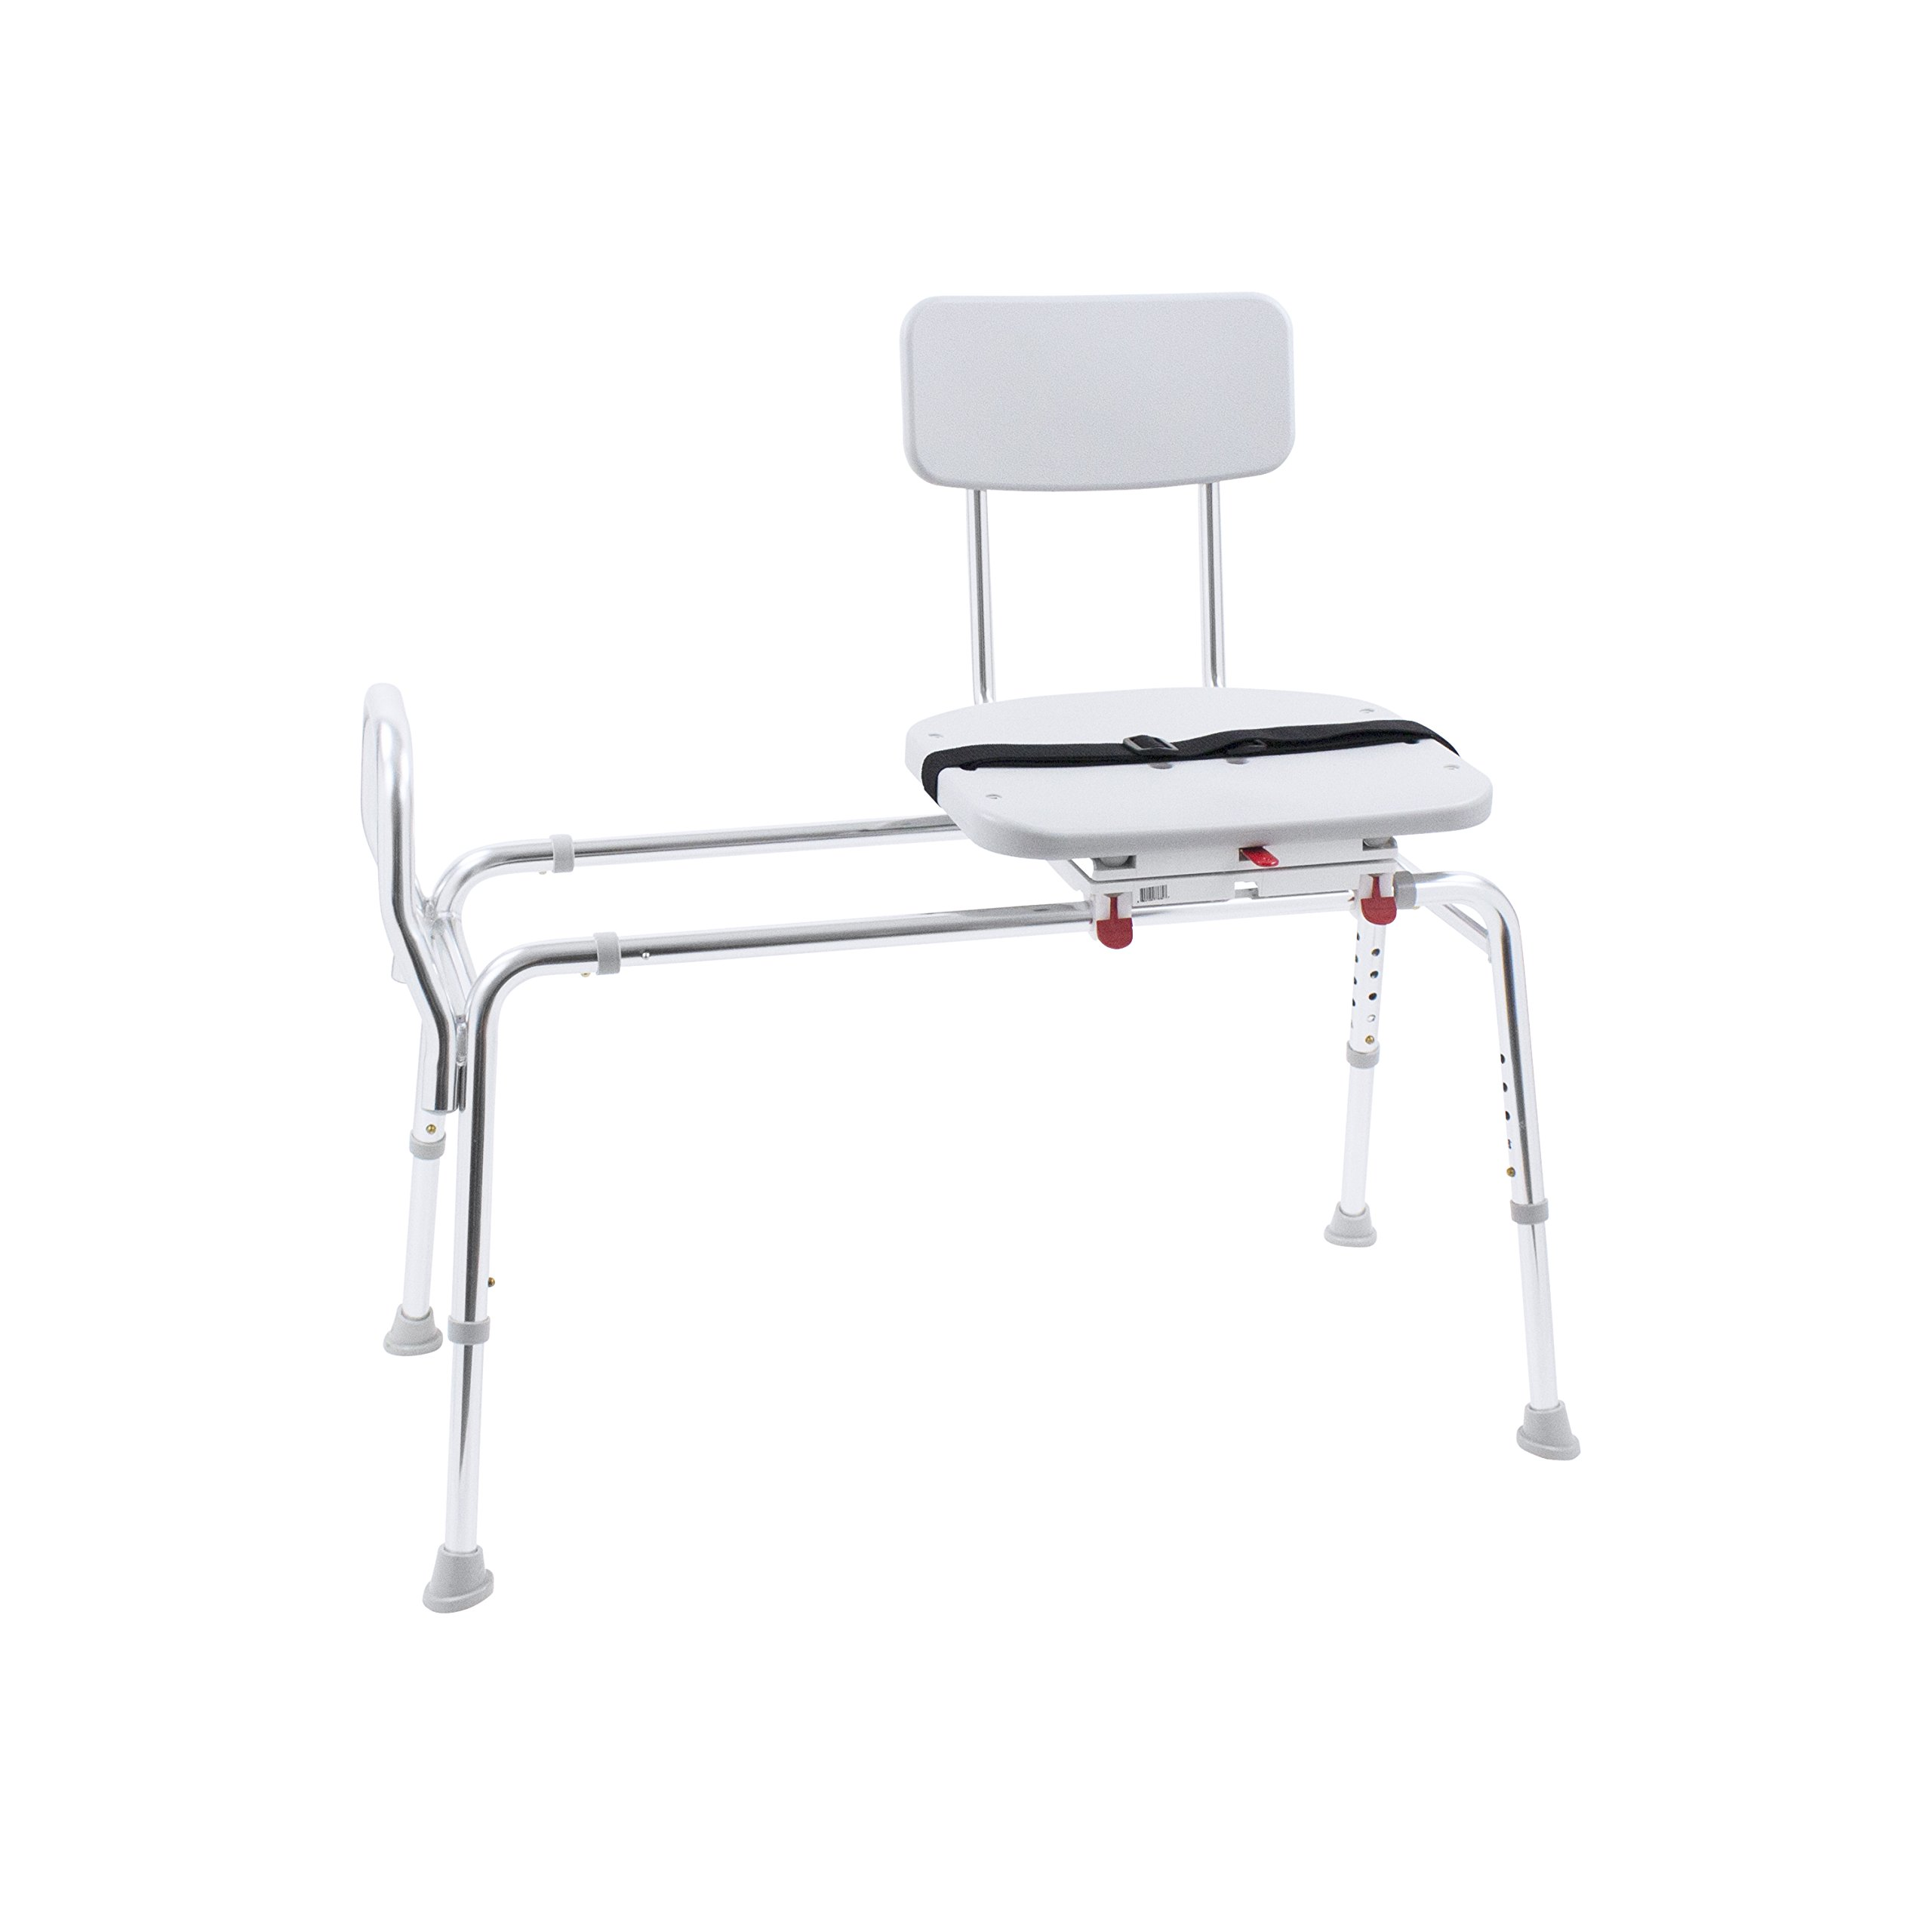 Eagle Health Supplies Swivel Sliding Shower Transfer Bench with Adjustable Height, No Tool Assembly by Eagle Health Supplies (Image #6)